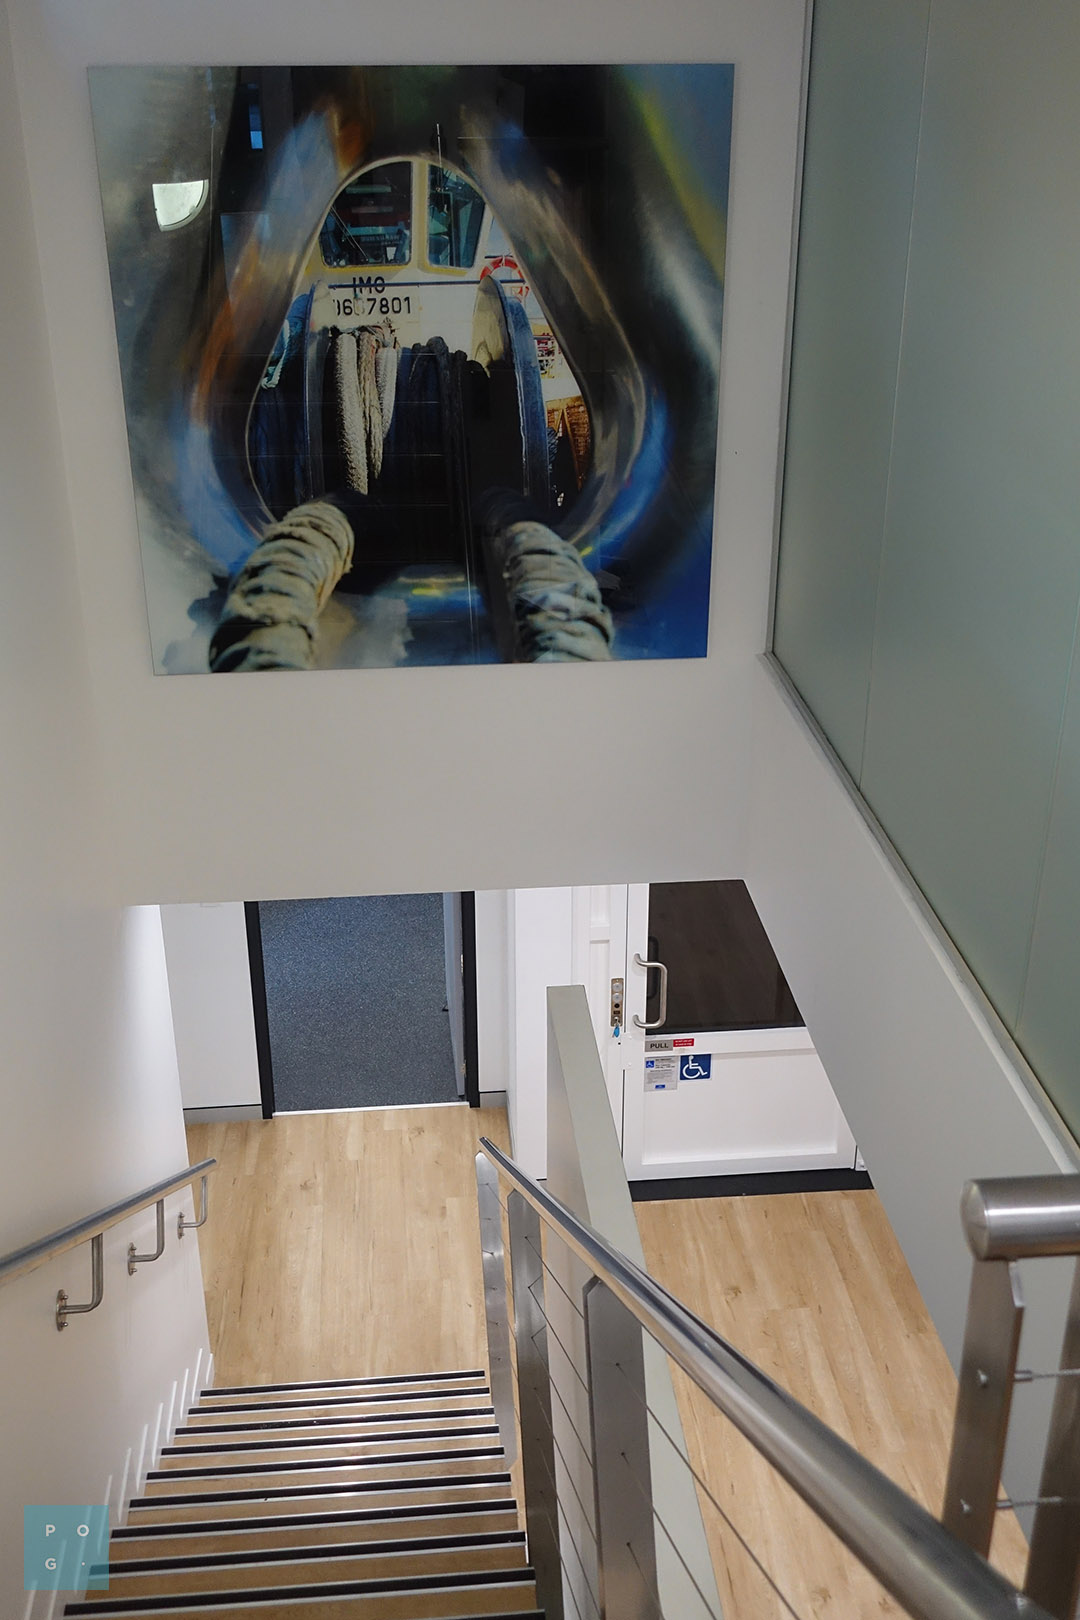 Large glass wall print of tugboat imagery on the overhead stairwell wall.